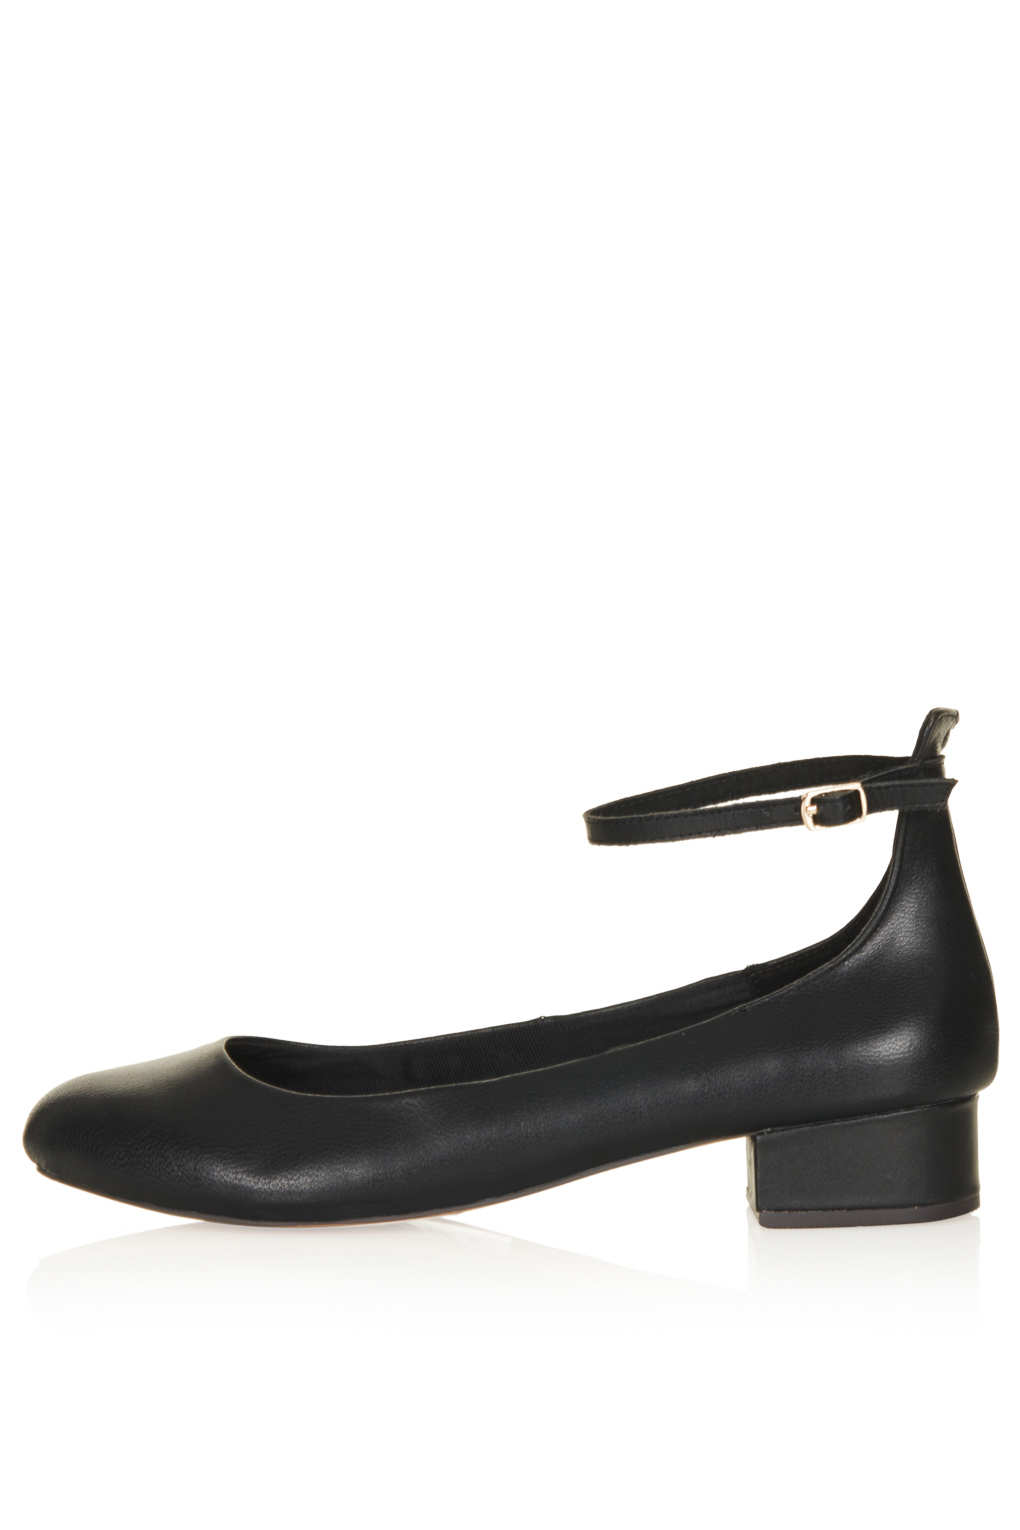 Black Wedge Dolly Shoes